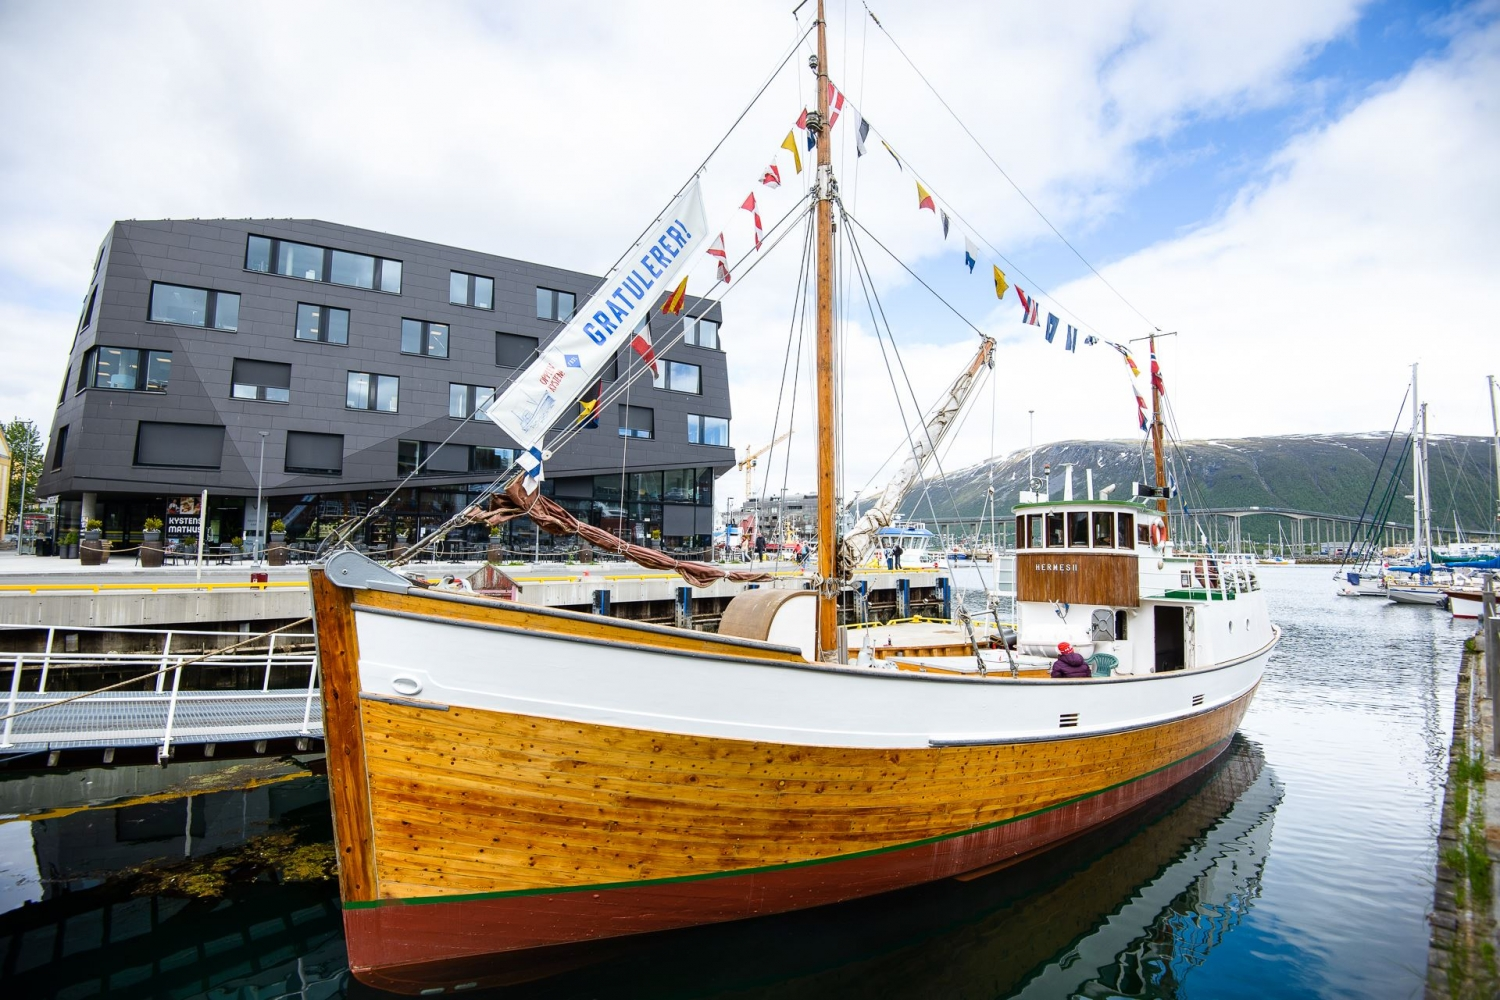 The wooden boat Hermes II by the pier in Tromsø city centre